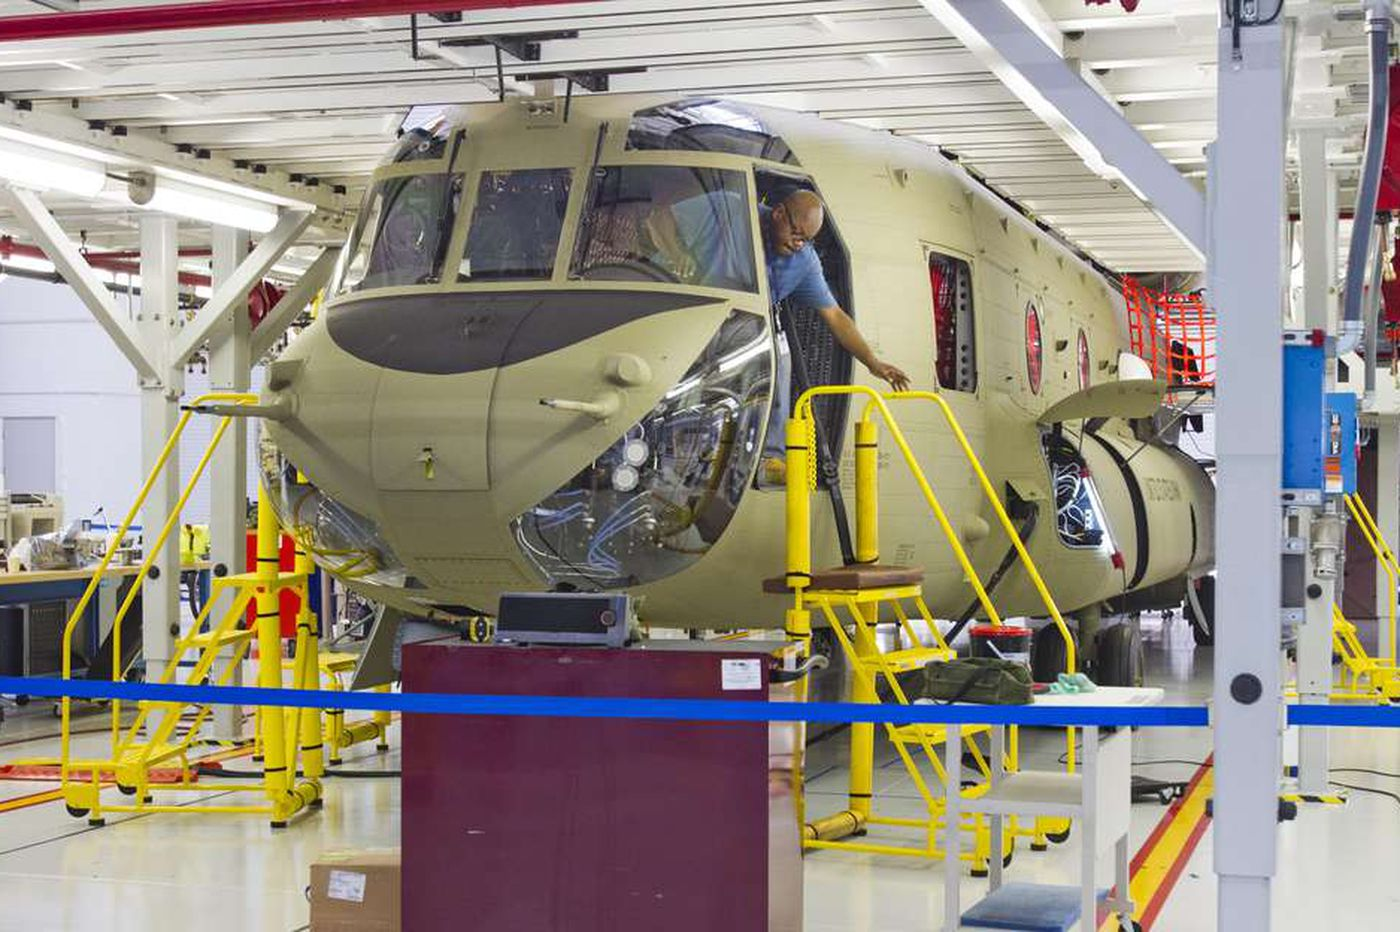 Can Pa. Democrats pressure Pentagon, Congress as GOP did, to save Boeing jobs?